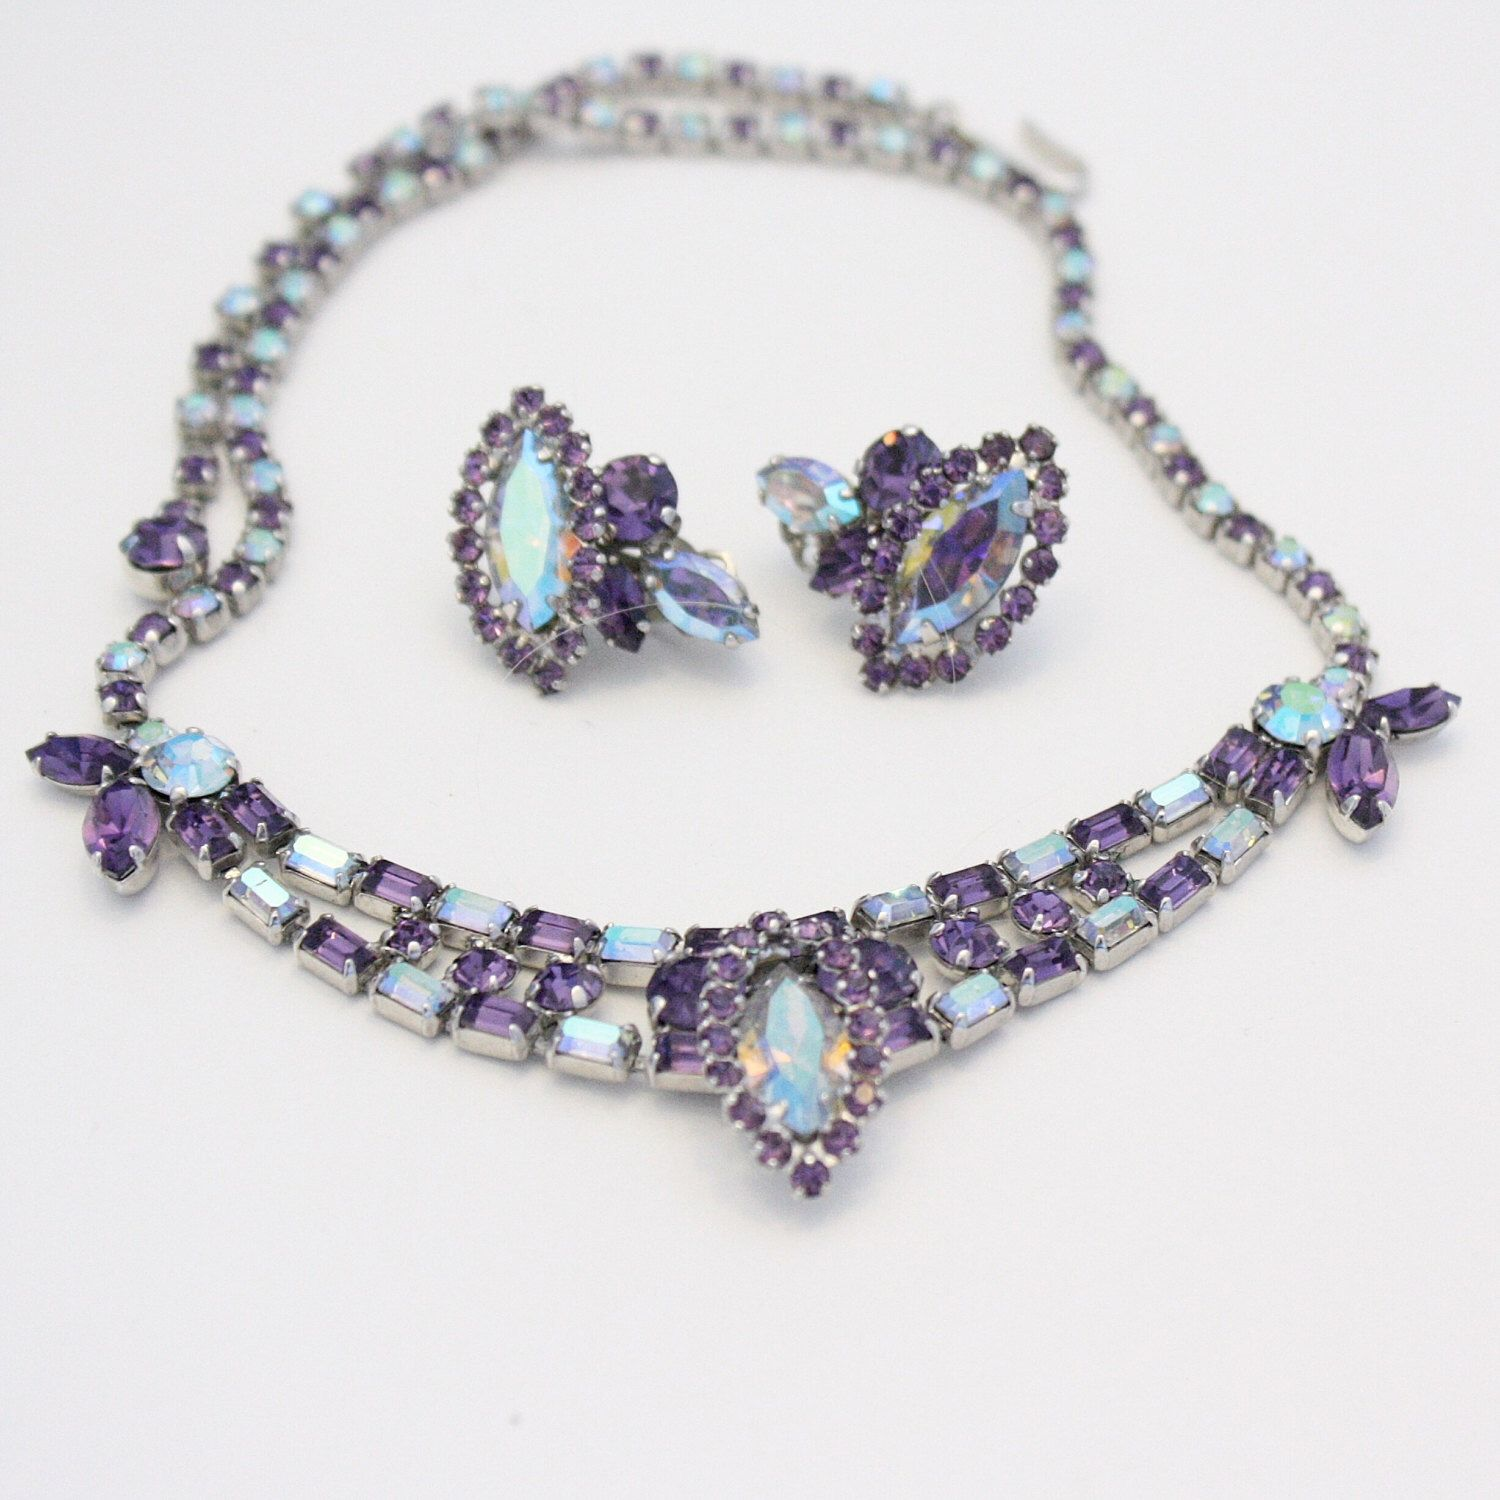 FS Vintage Sherman Signed Purple AB Rhinestone Choker Necklace Earrings Set by Epoques on Etsy https://www.etsy.com/ca/listing/268332341/fs-vintage-sherman-signed-purple-ab